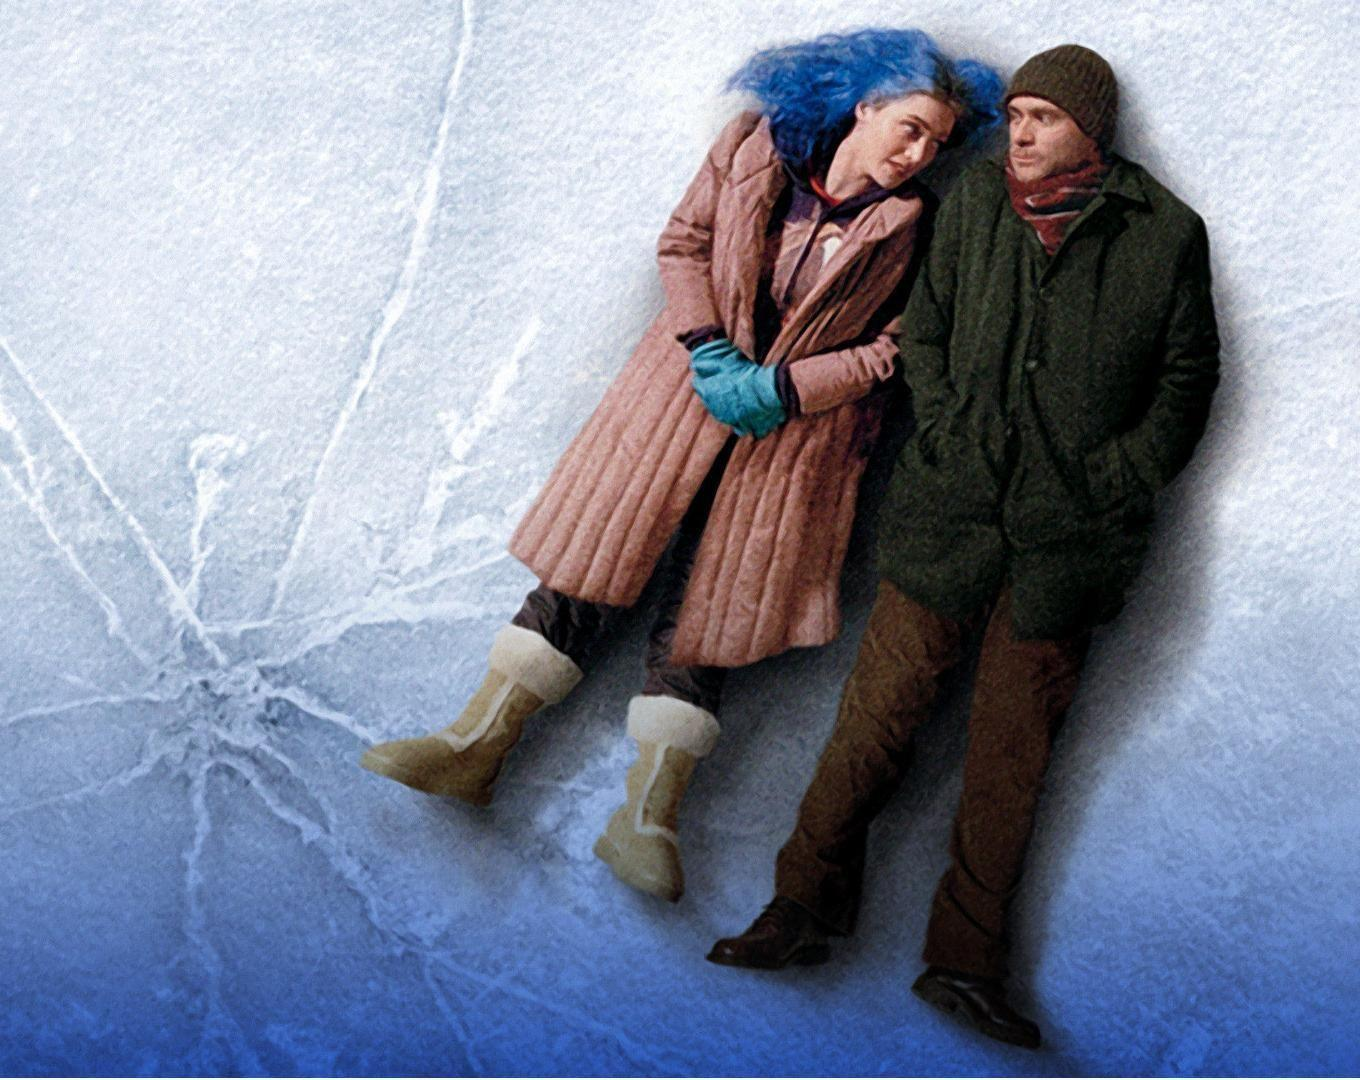 1360x1080px Eternal Sunshine Of The Spotless Mind 198.89 KB #229853